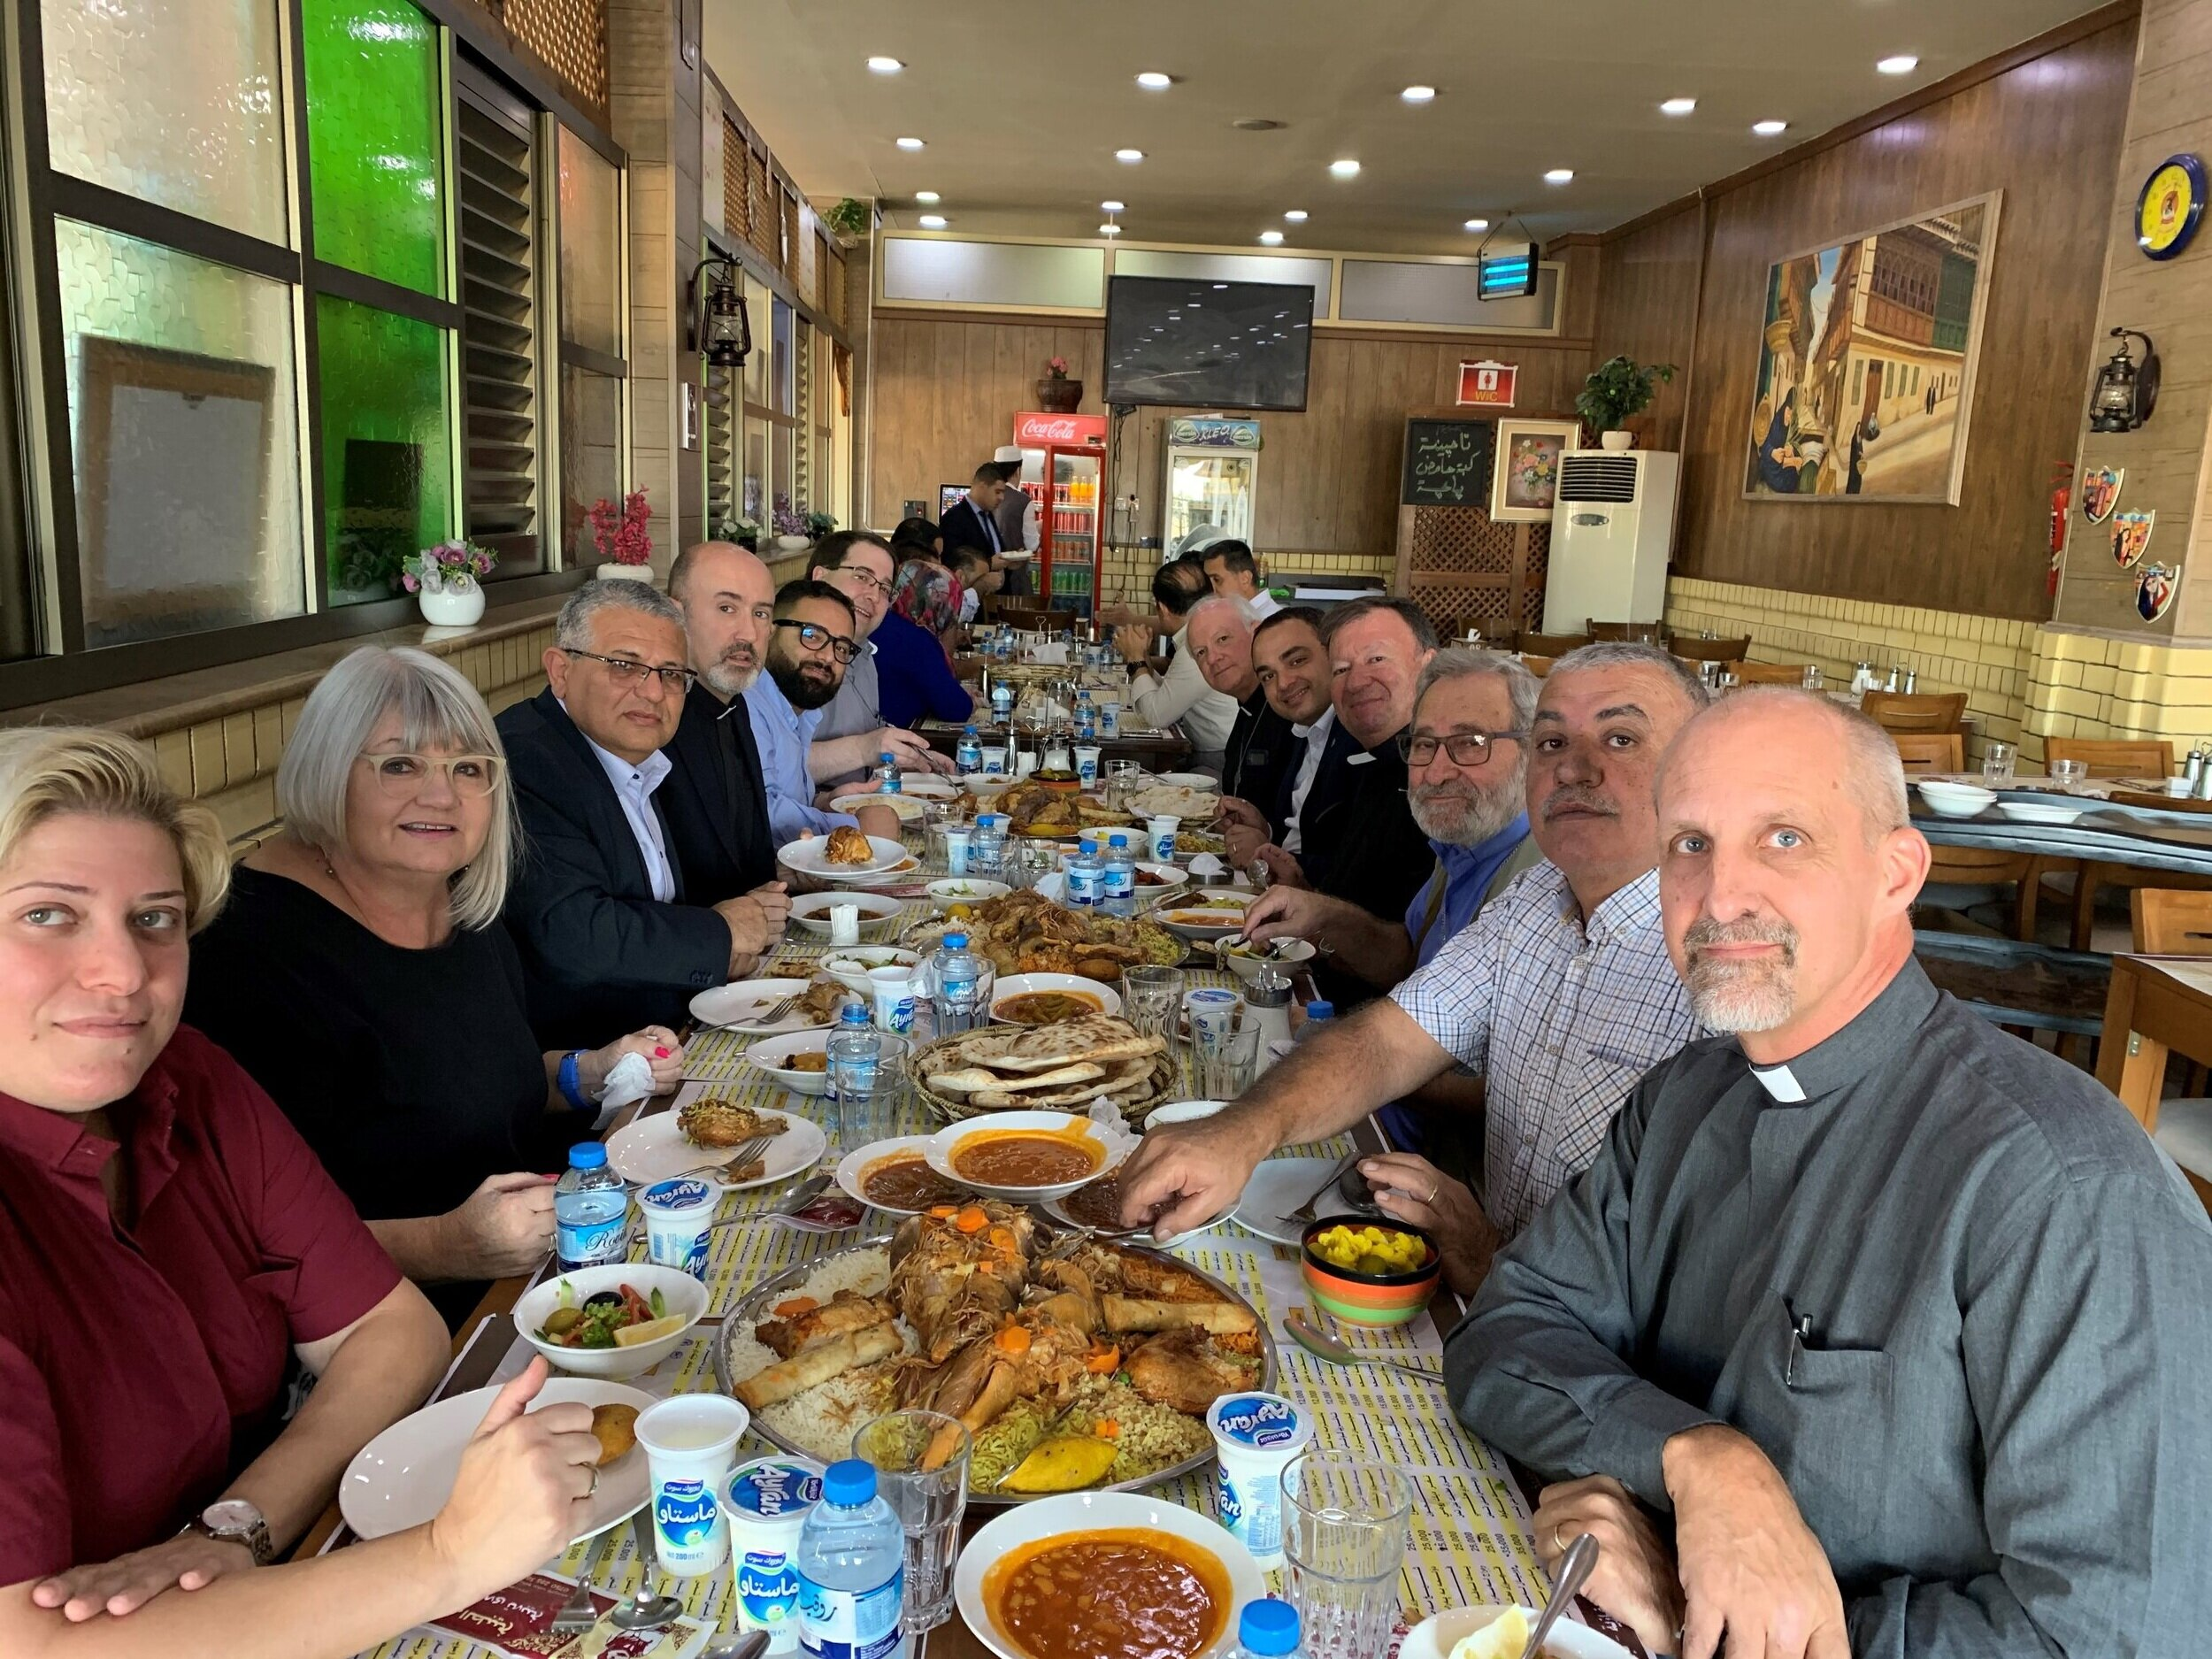 In between visits with the Archbishops, our Iraqi Presbyterian hosts invited us to a traditional dinner of roast lamb